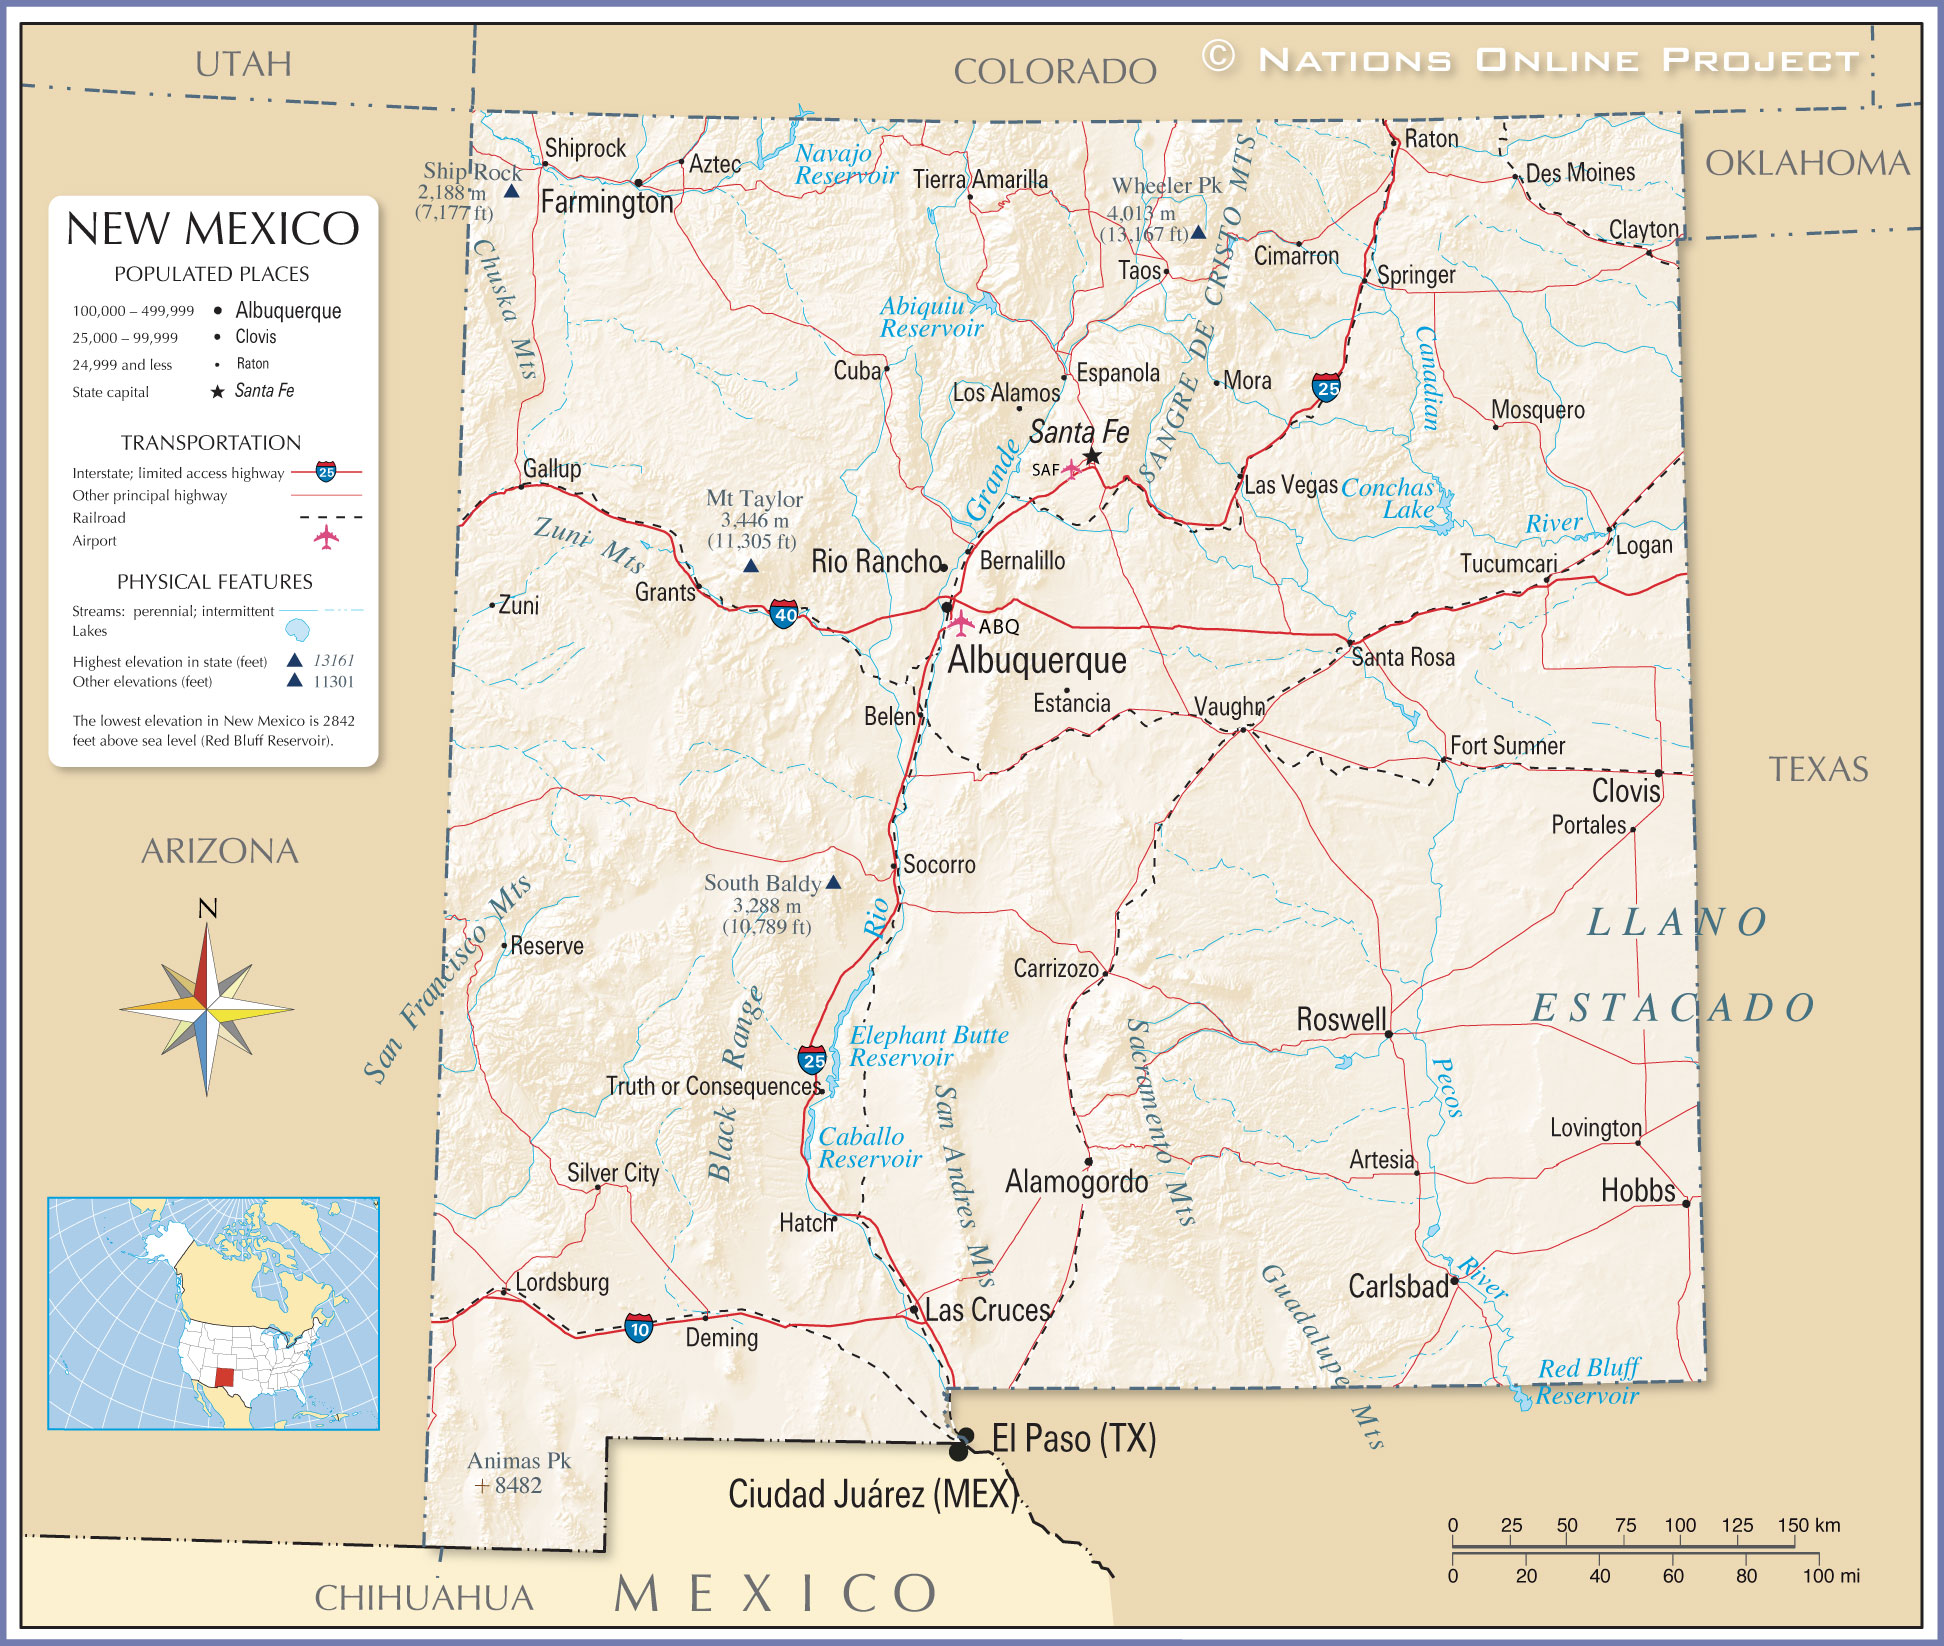 Reference Map Of New Mexico USA Nations Online Project - New mexico map with cities